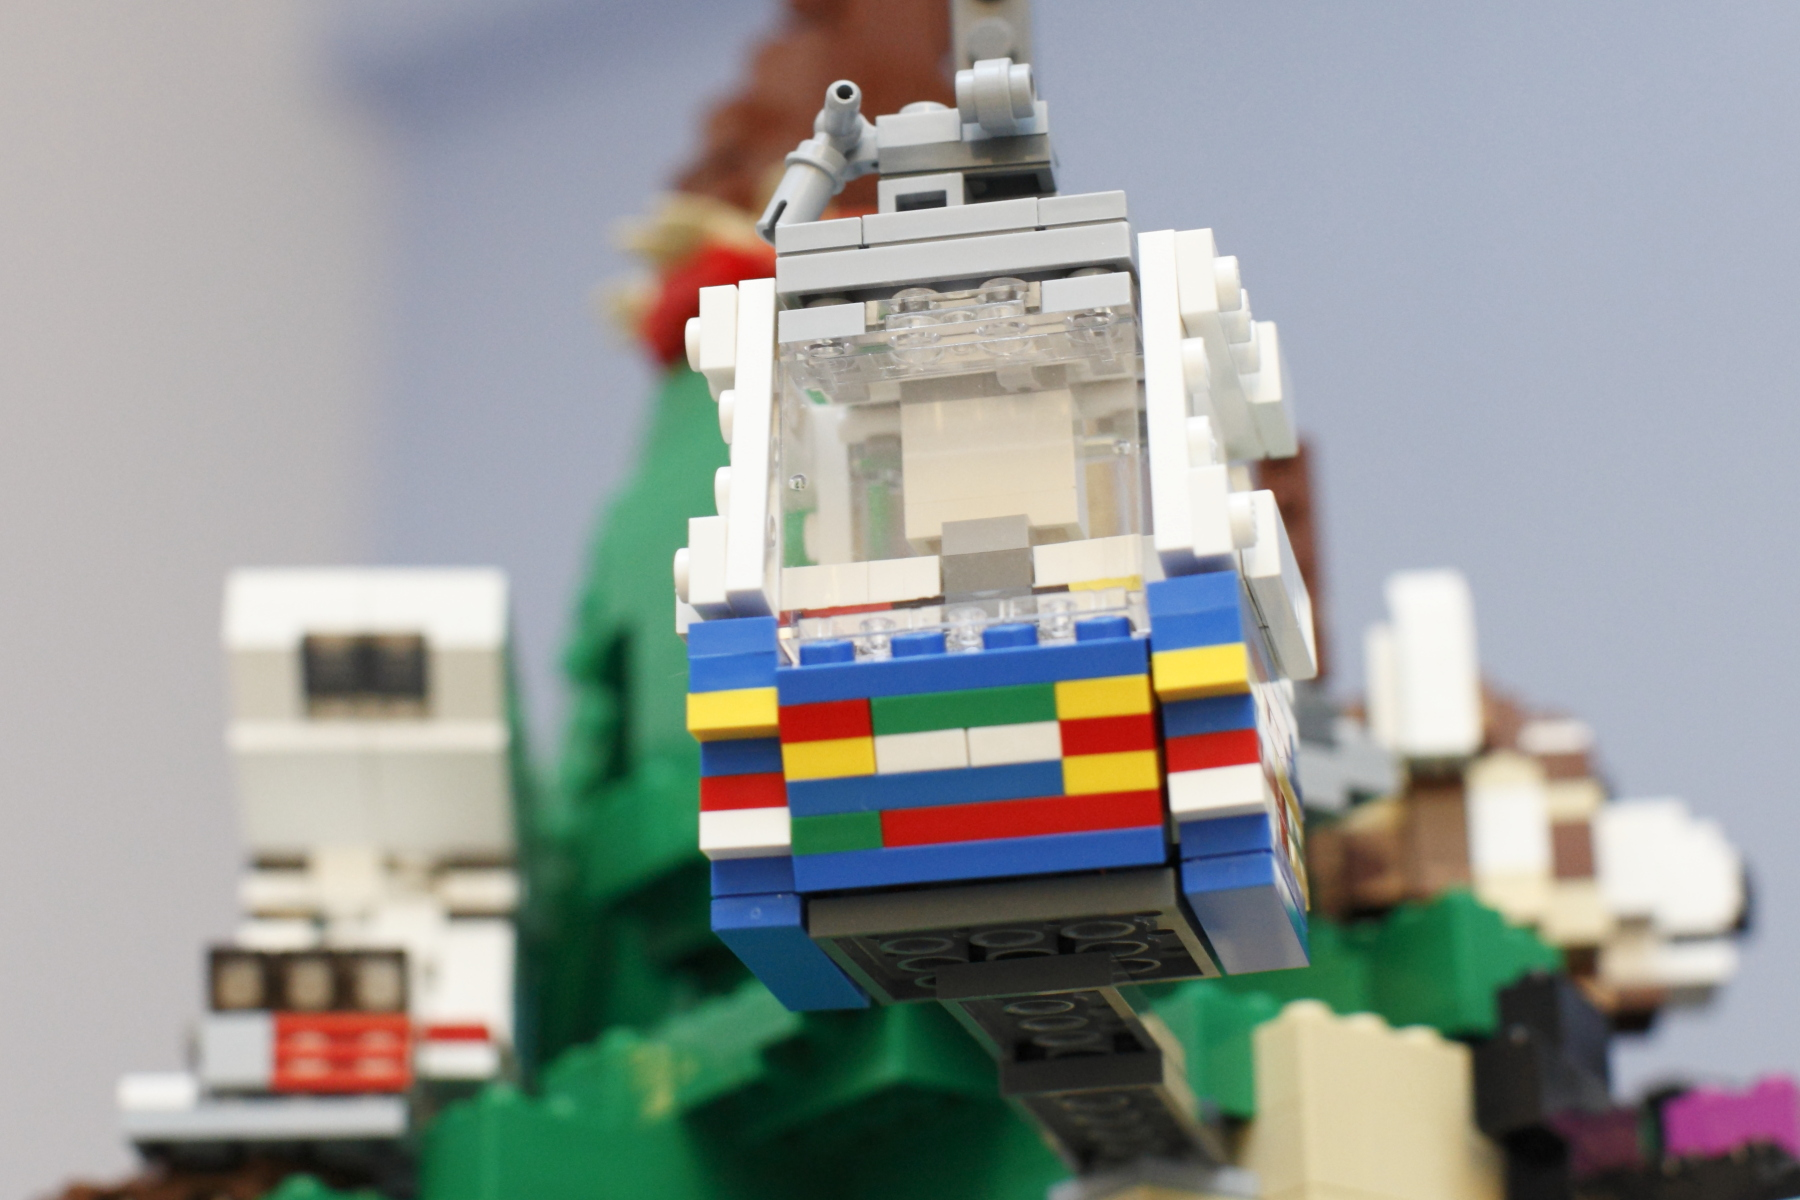 lego2010-ck-hightlight-11s.jpg